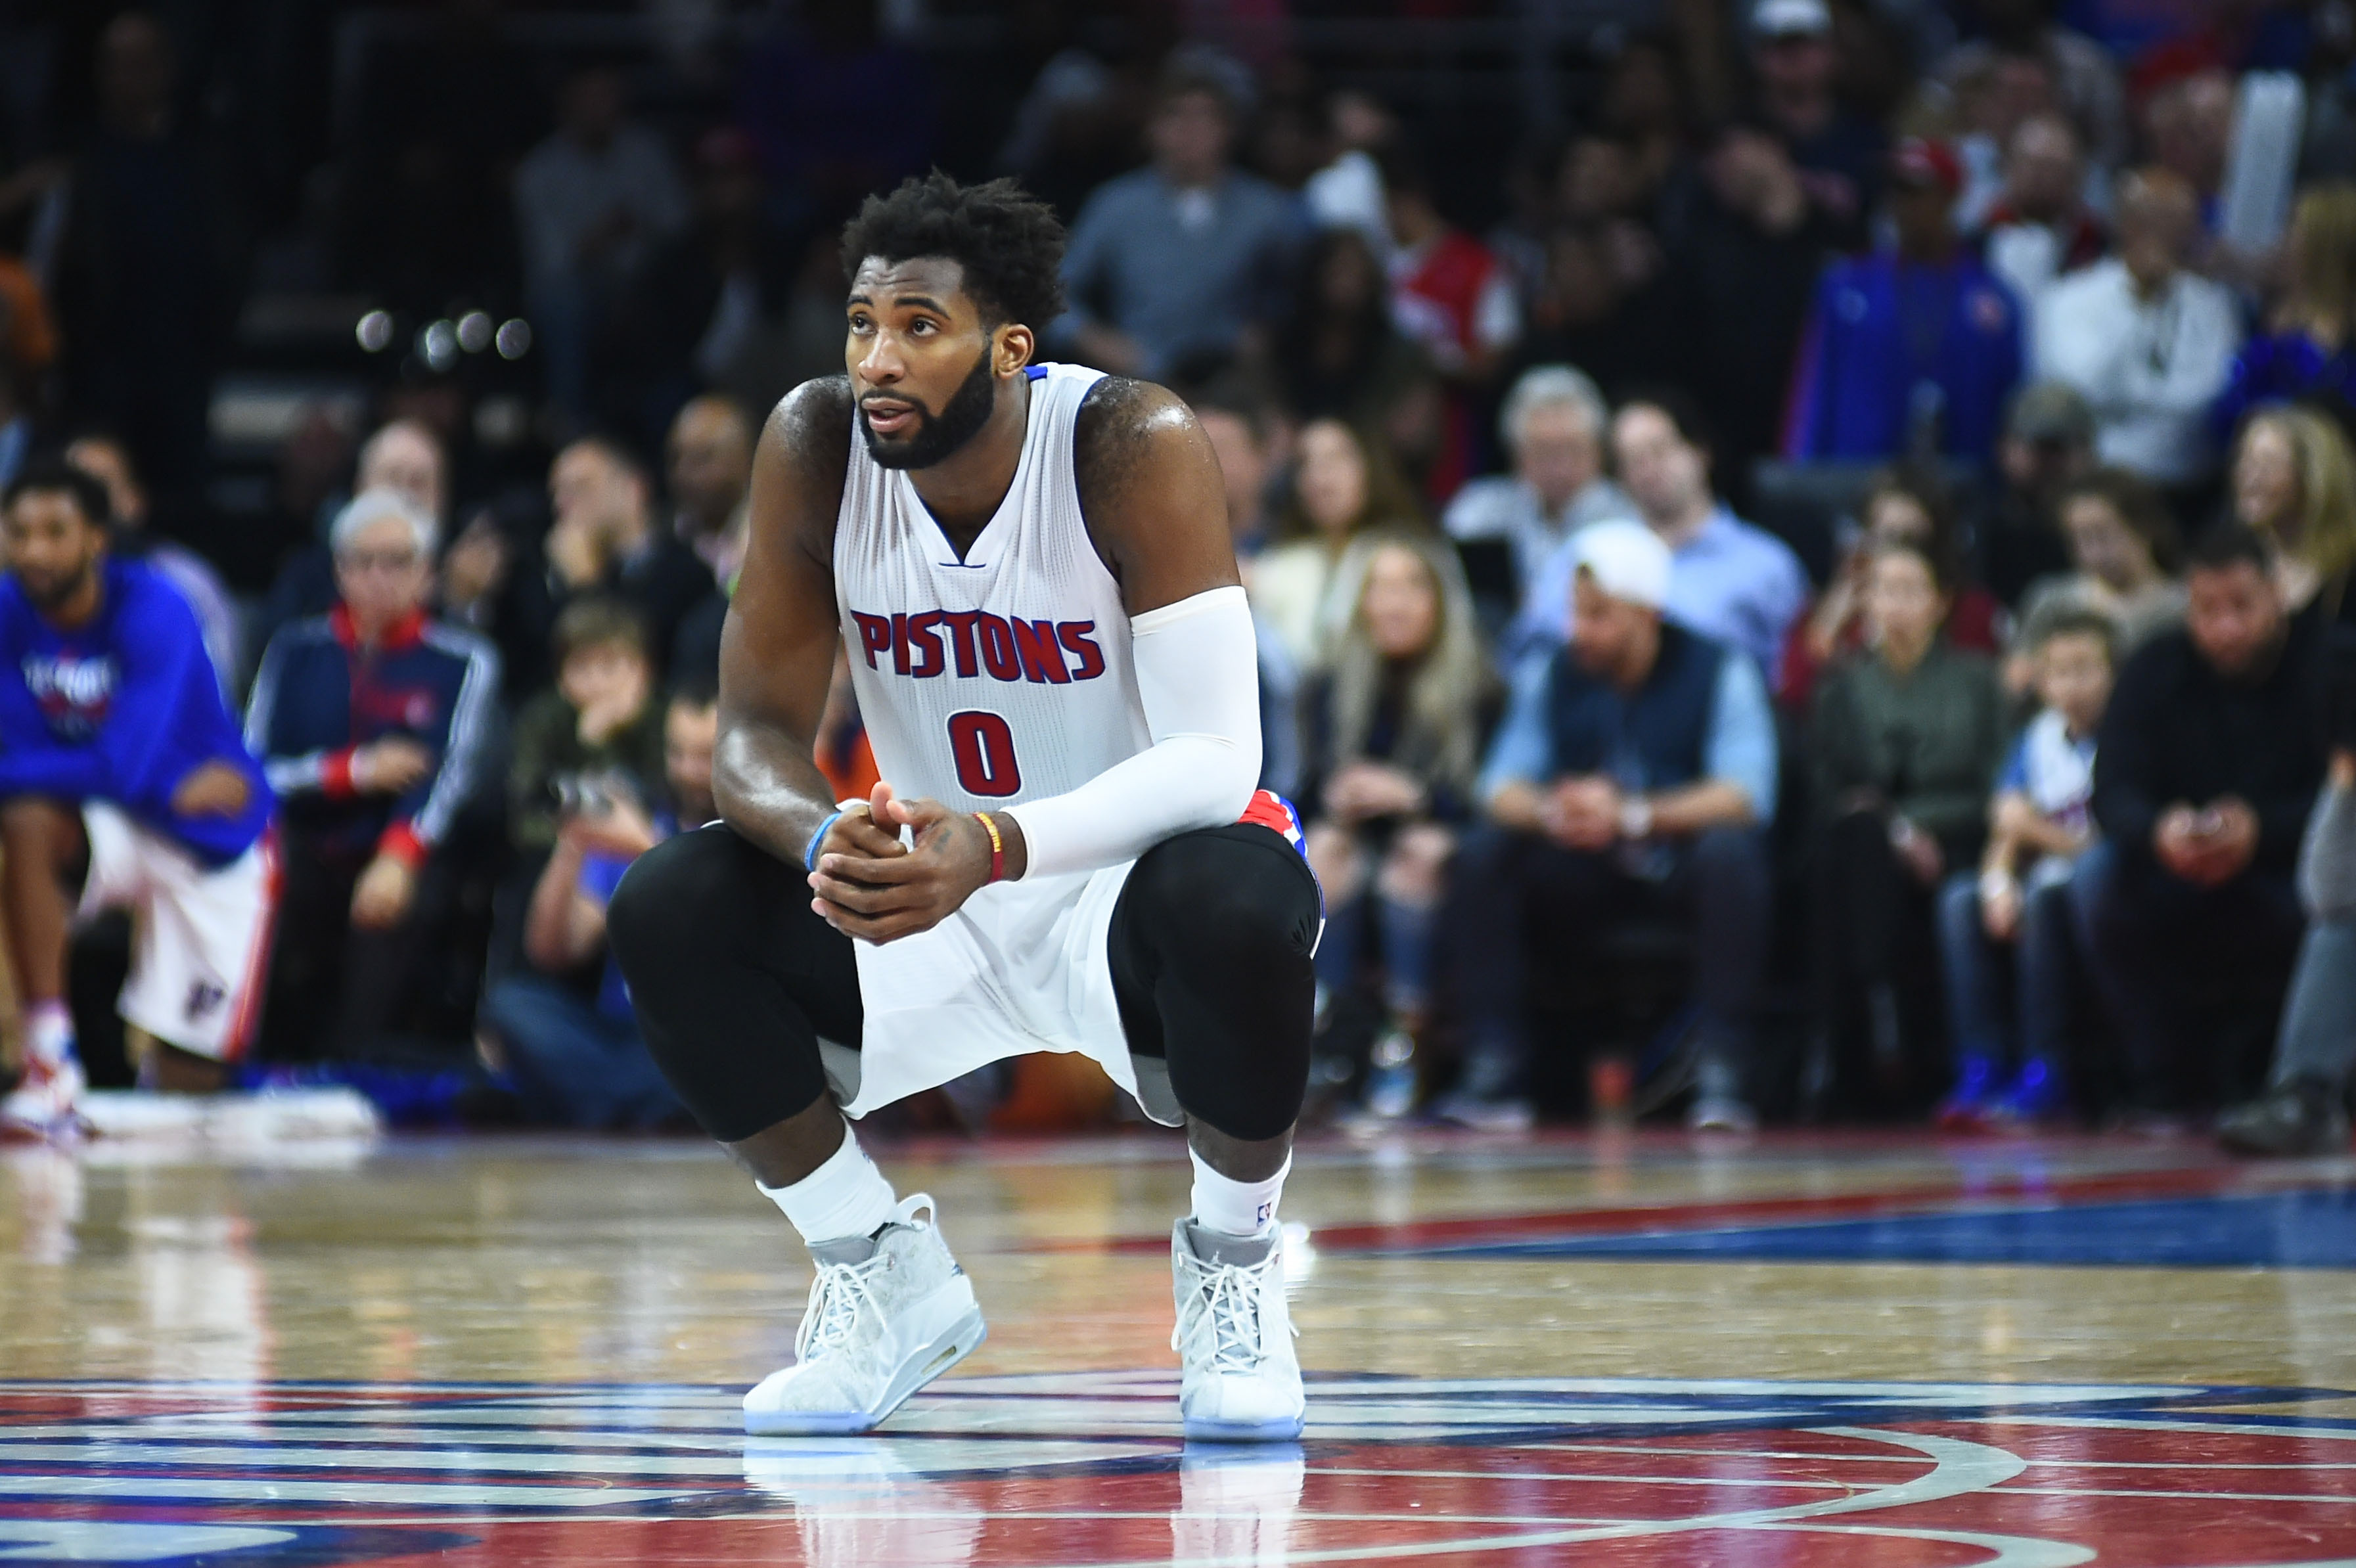 8963979-nba-cleveland-cavaliers-at-detroit-pistons